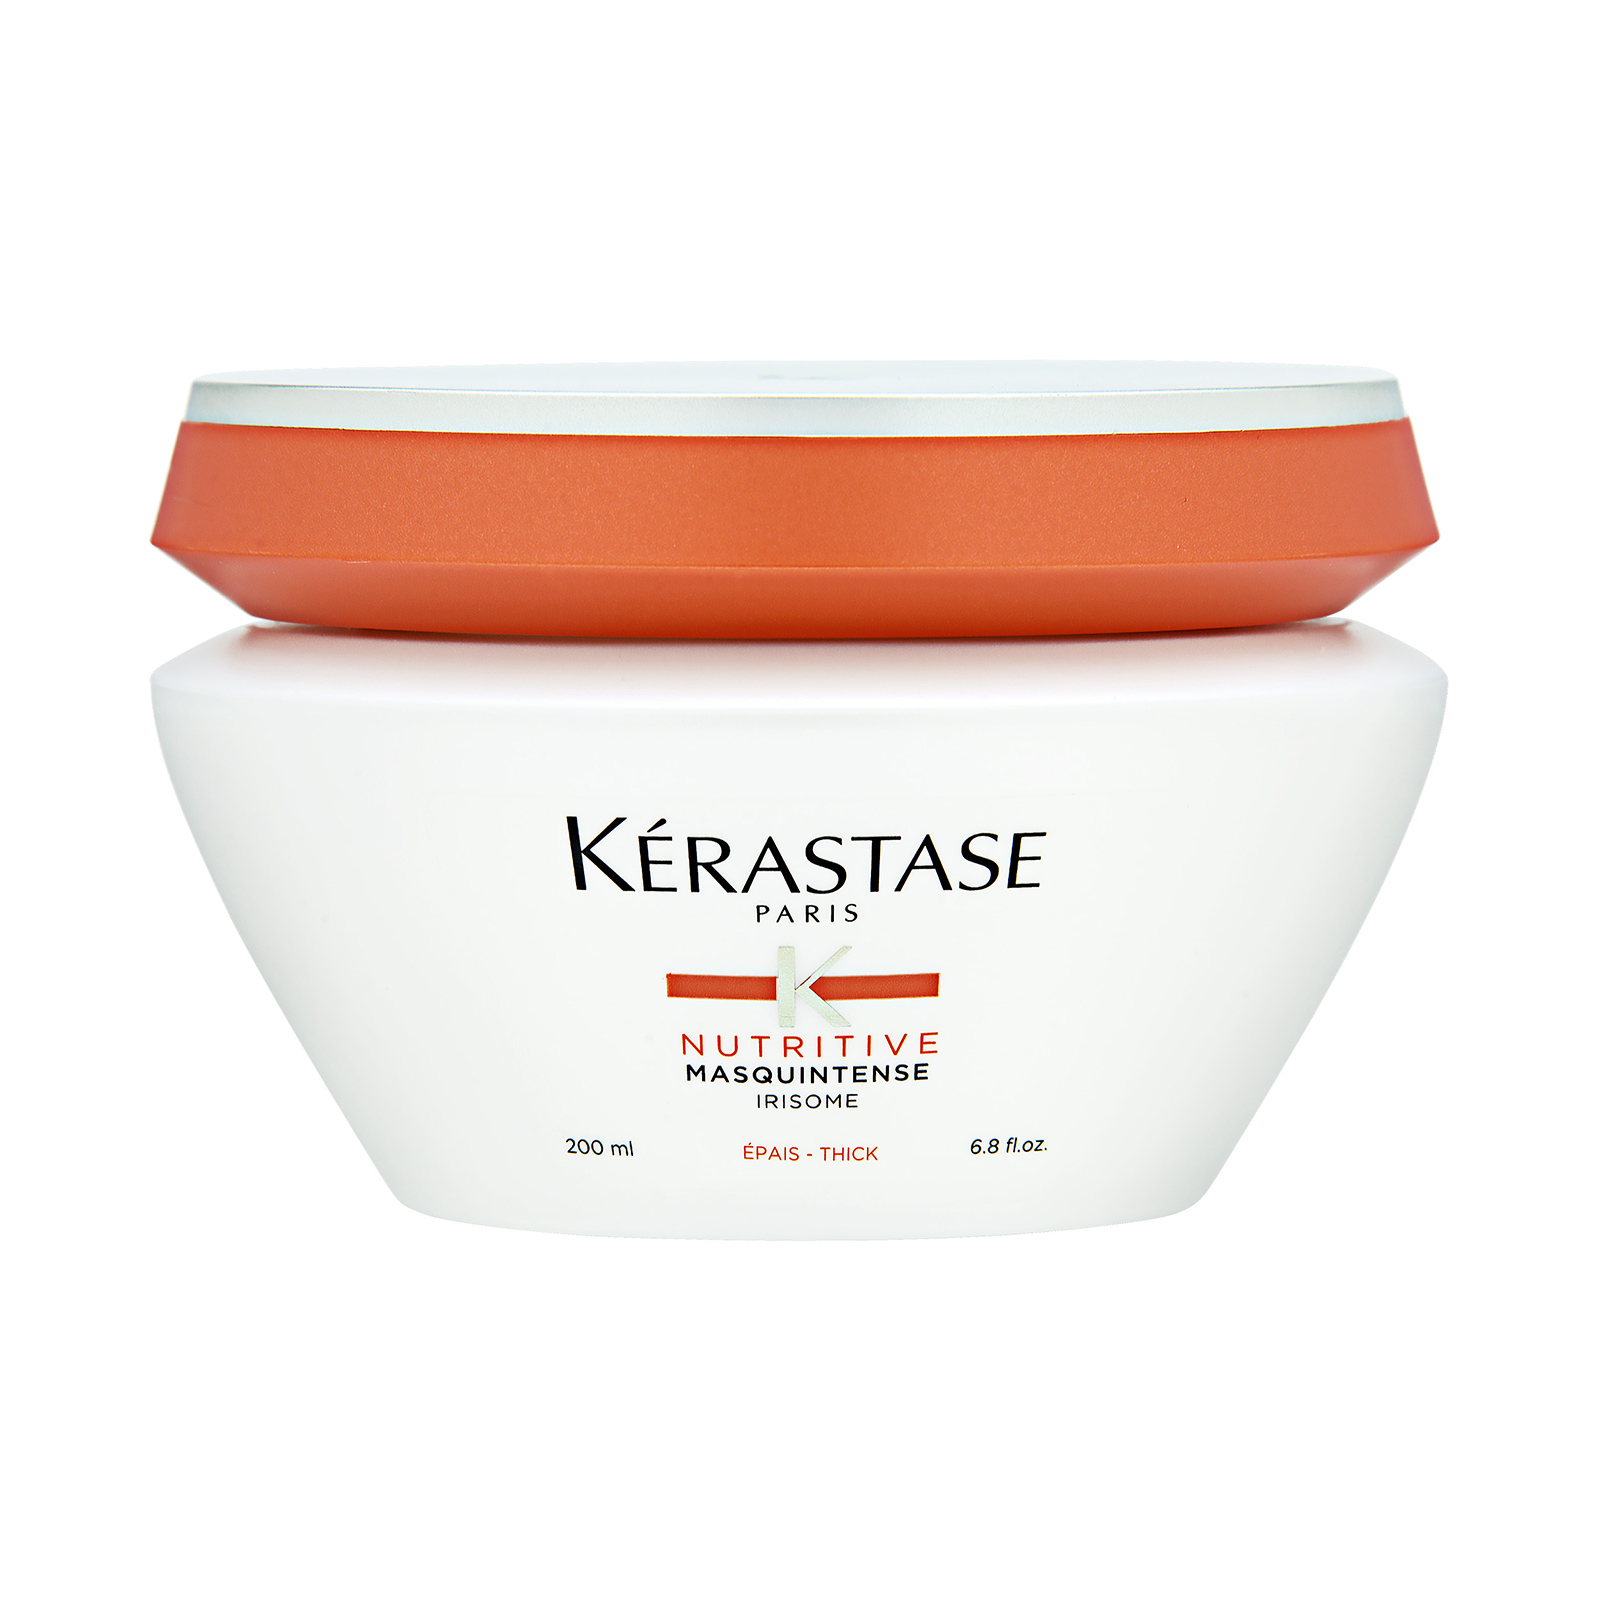 Kérastase Paris Nutritive  Masquintense Irisome Exceptionally Concentrated Nourishing Treatment - Thick Hair (For Dry and Extremely Sensitised Hair) 6.8oz, 200m